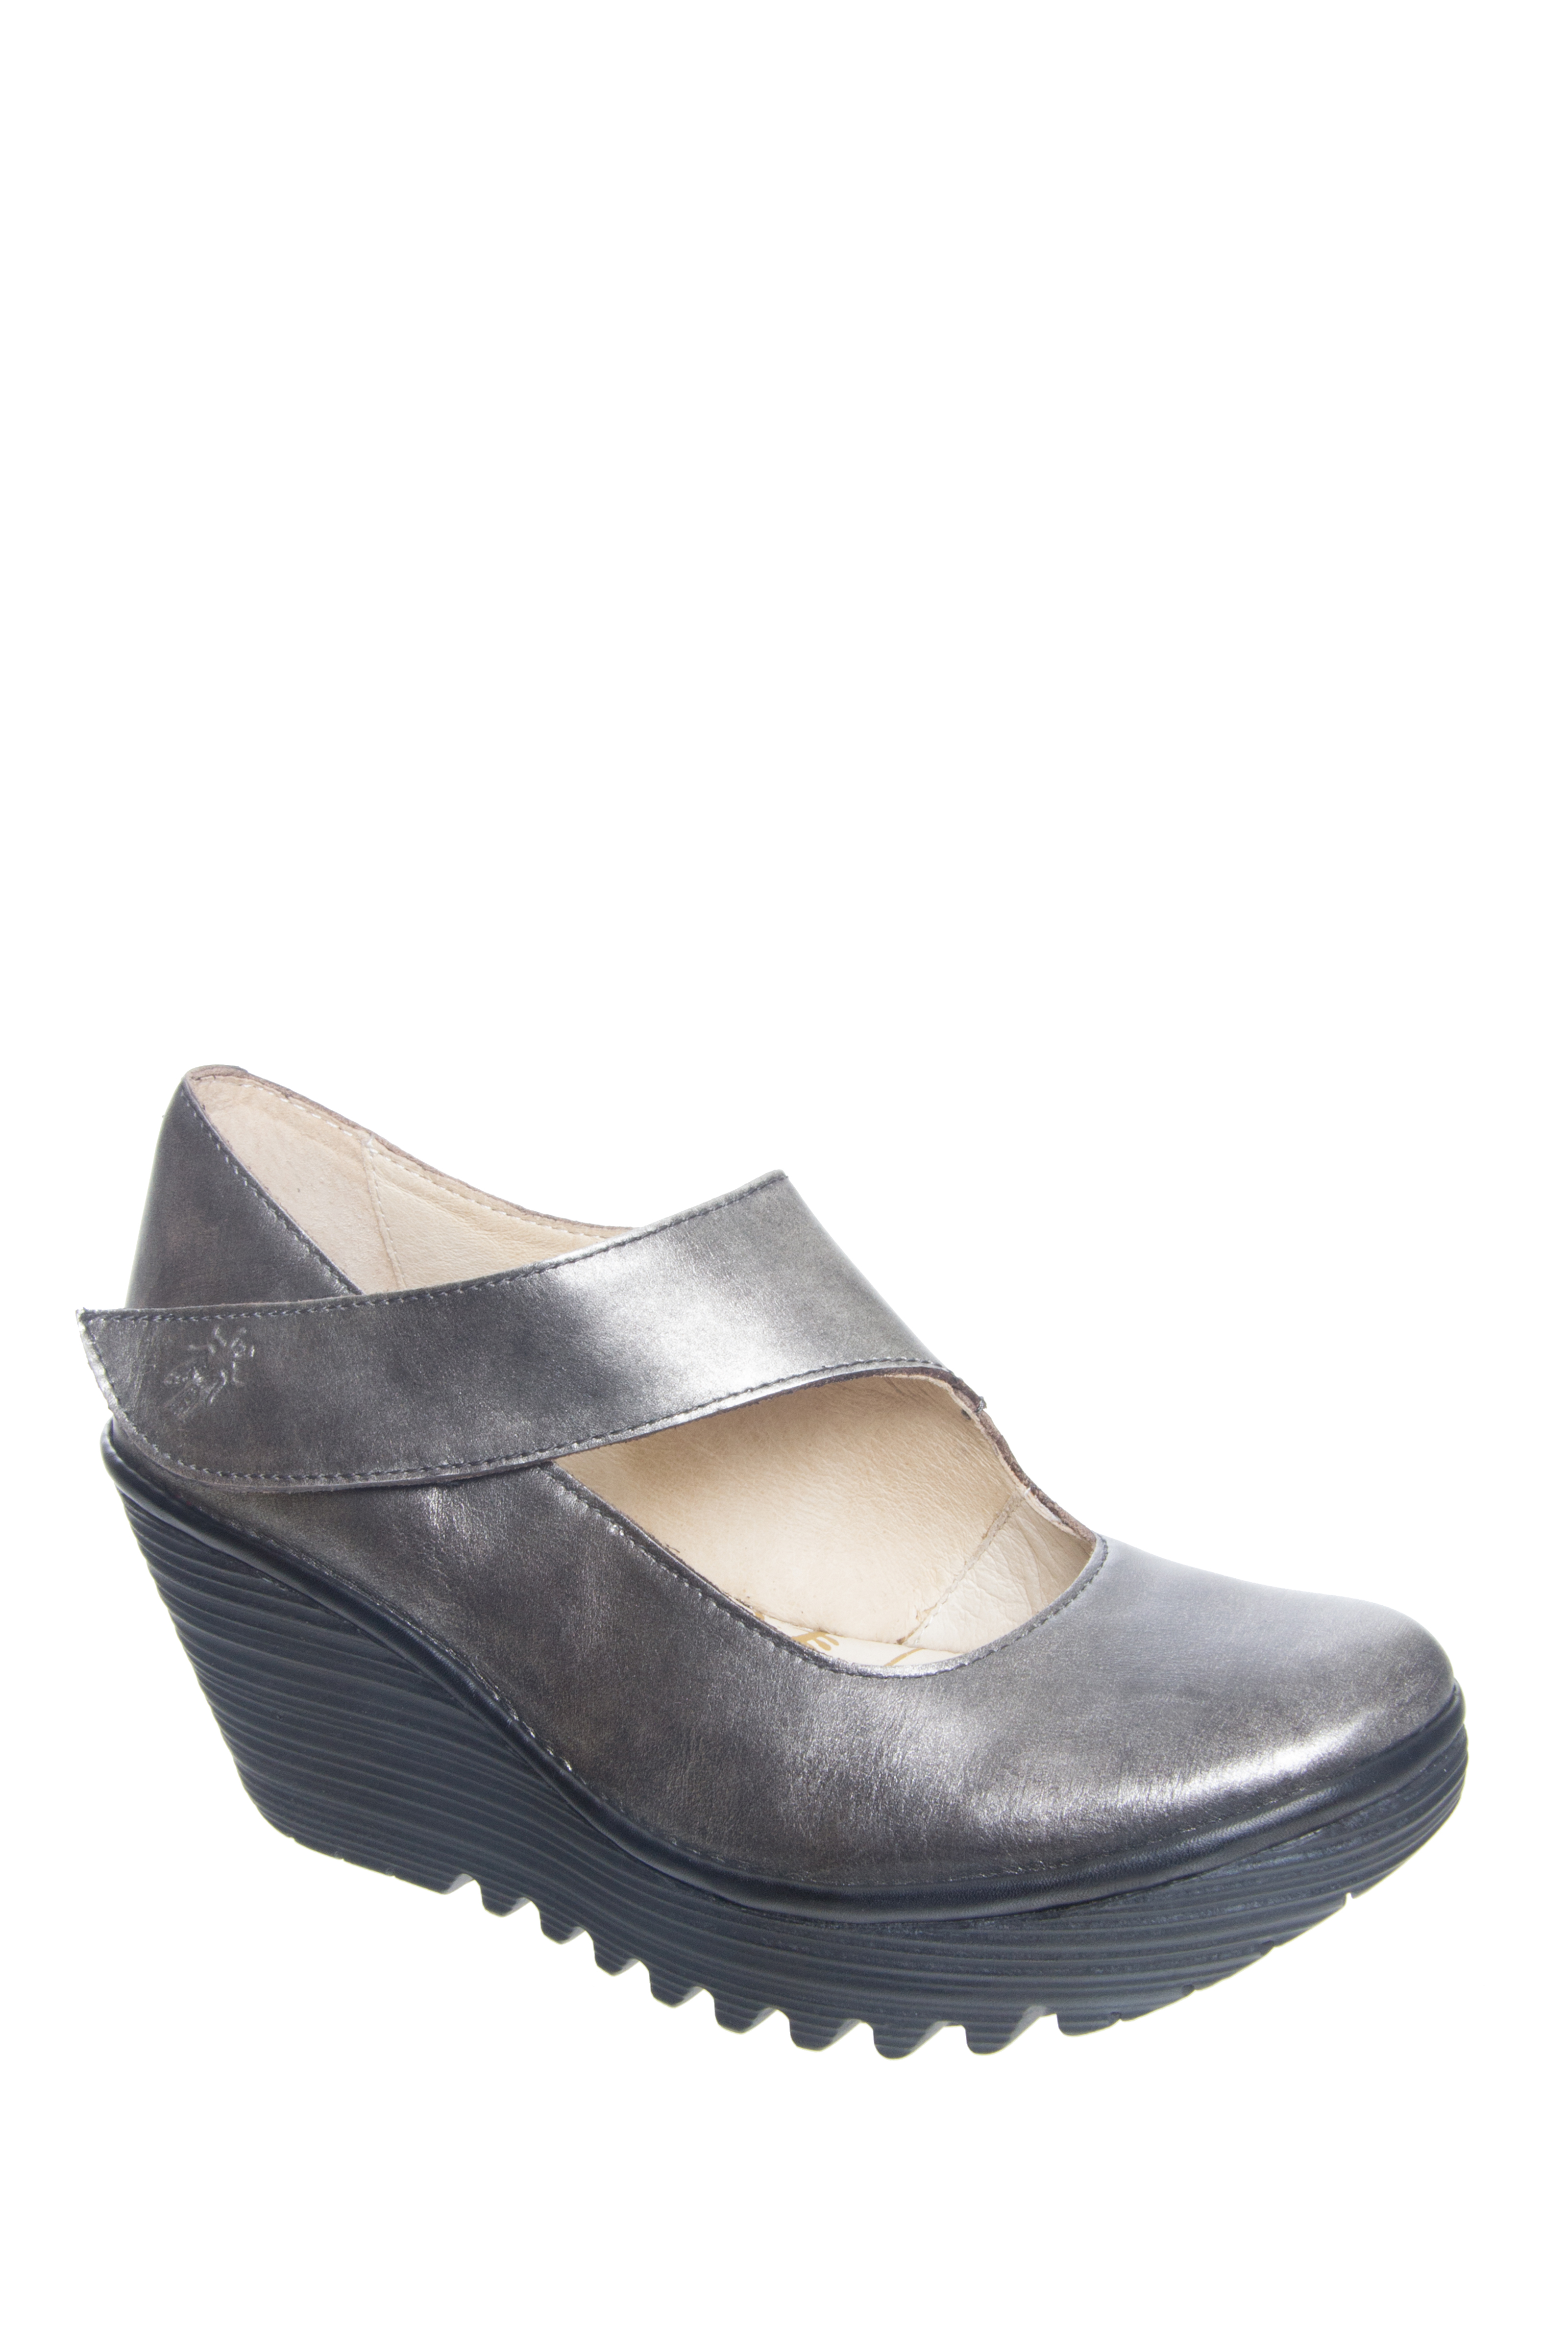 Fly London Yasi Mid Wedge Heels - Antique Silver